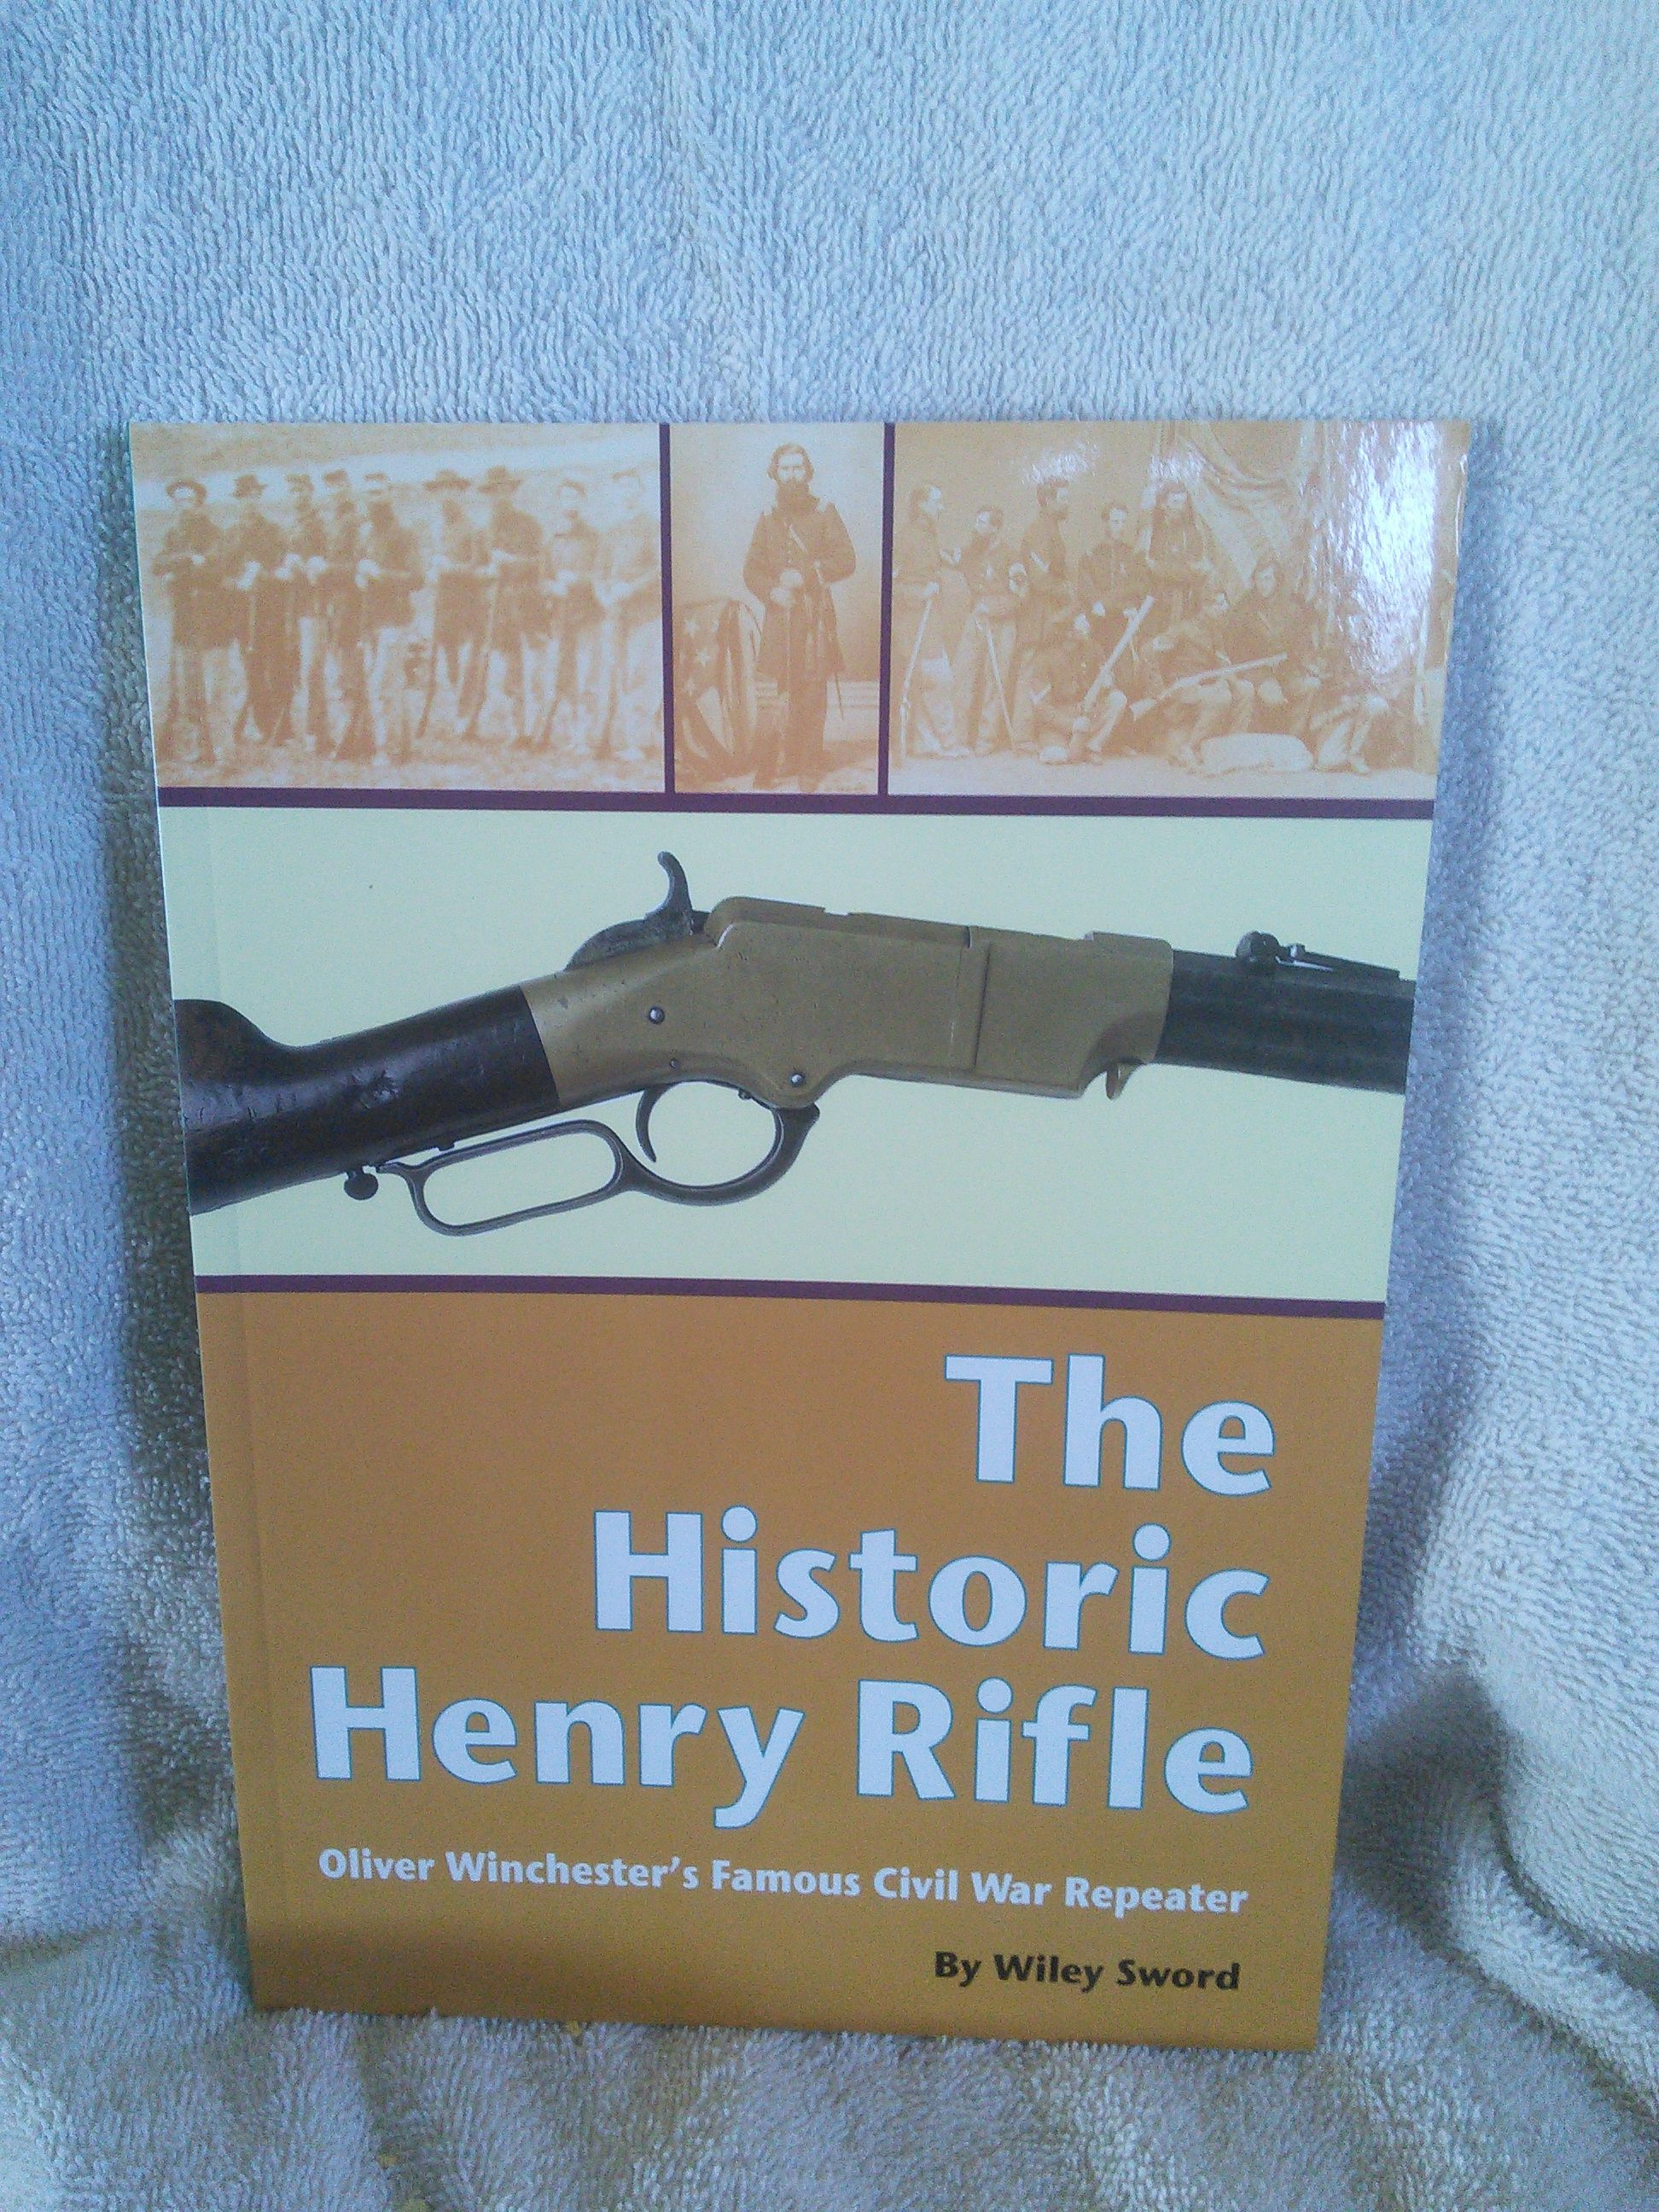 9781931464017 - The Historic Henry Rifle: Oliver Winchester's Famous